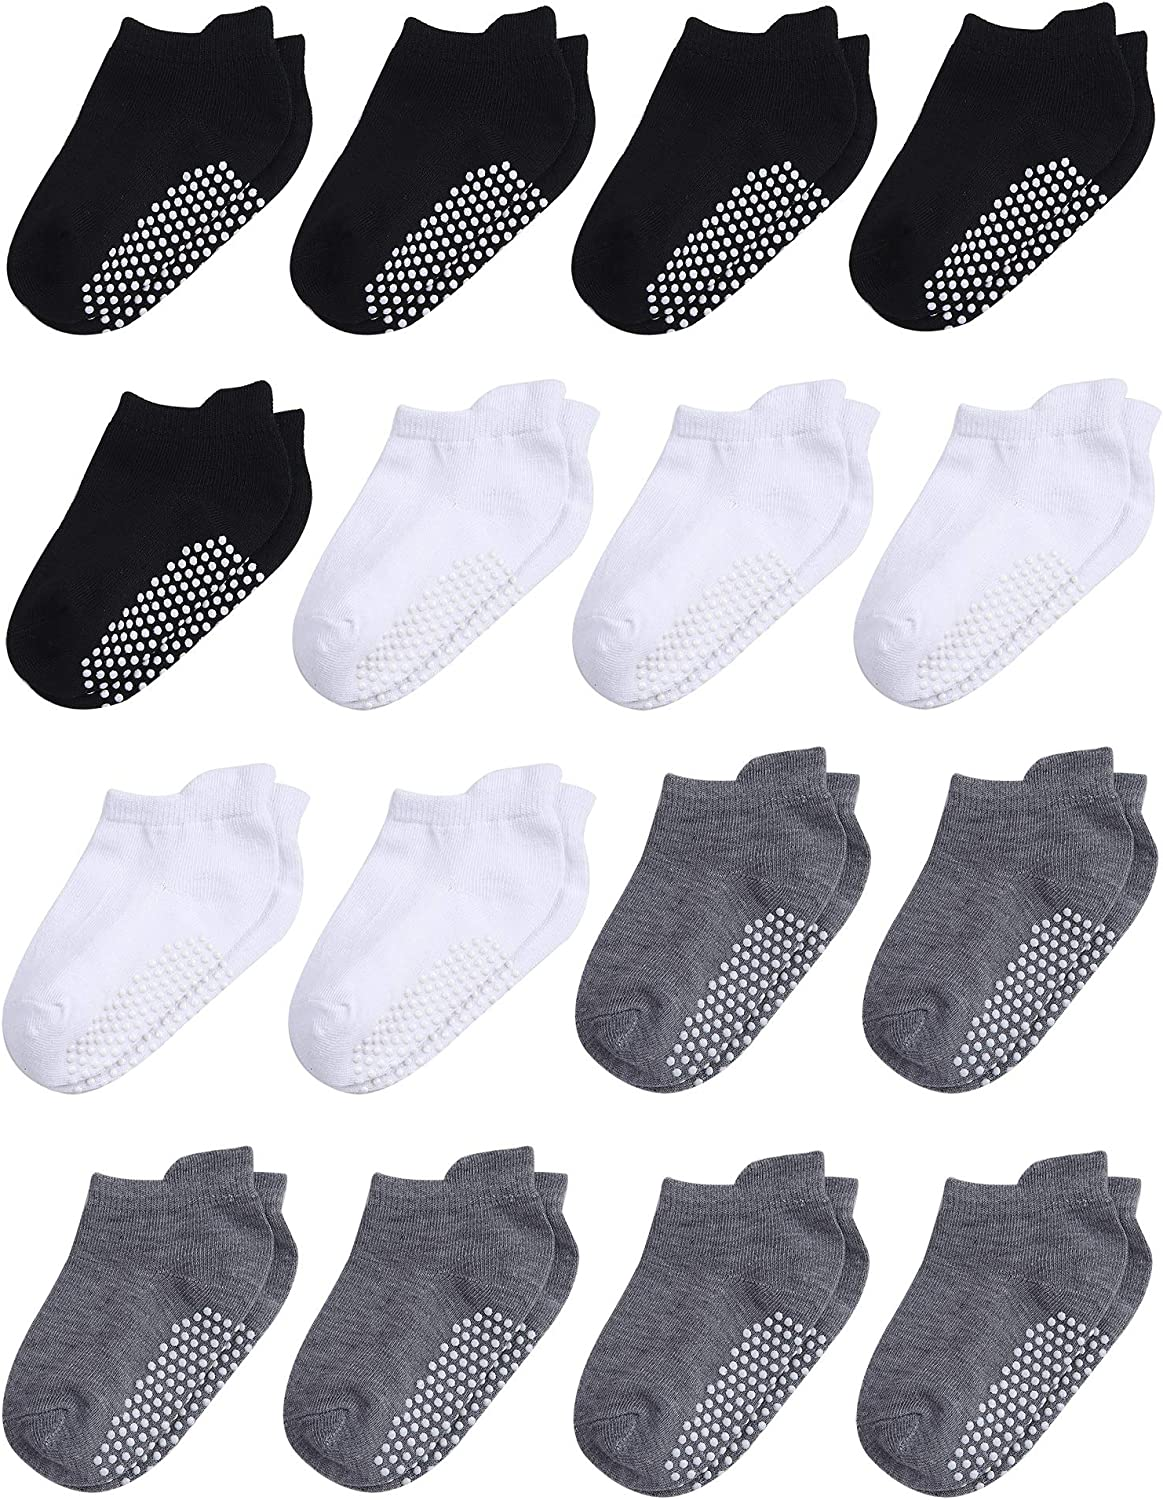 Cooraby 16 Pairs Toddler Non Slip Grip Ankle Socks Anti Skid Athletic Socks for Toddlers Boys or Girls